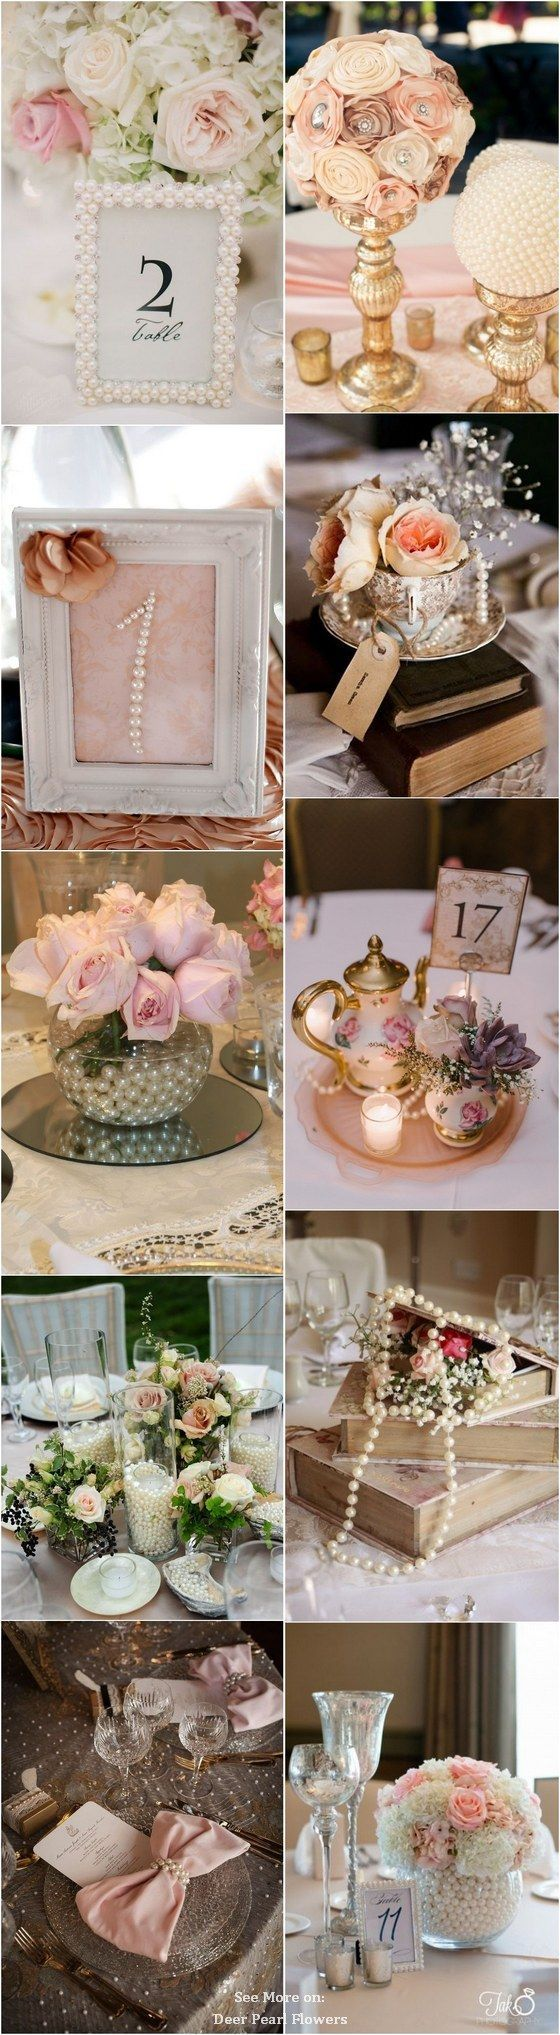 35 chic vintage pearl wedding ideas youll love noel weddings and vintage pearls wedding ideas and themes httpdeerpearlflowers vintage pearl wedding ideas junglespirit Choice Image